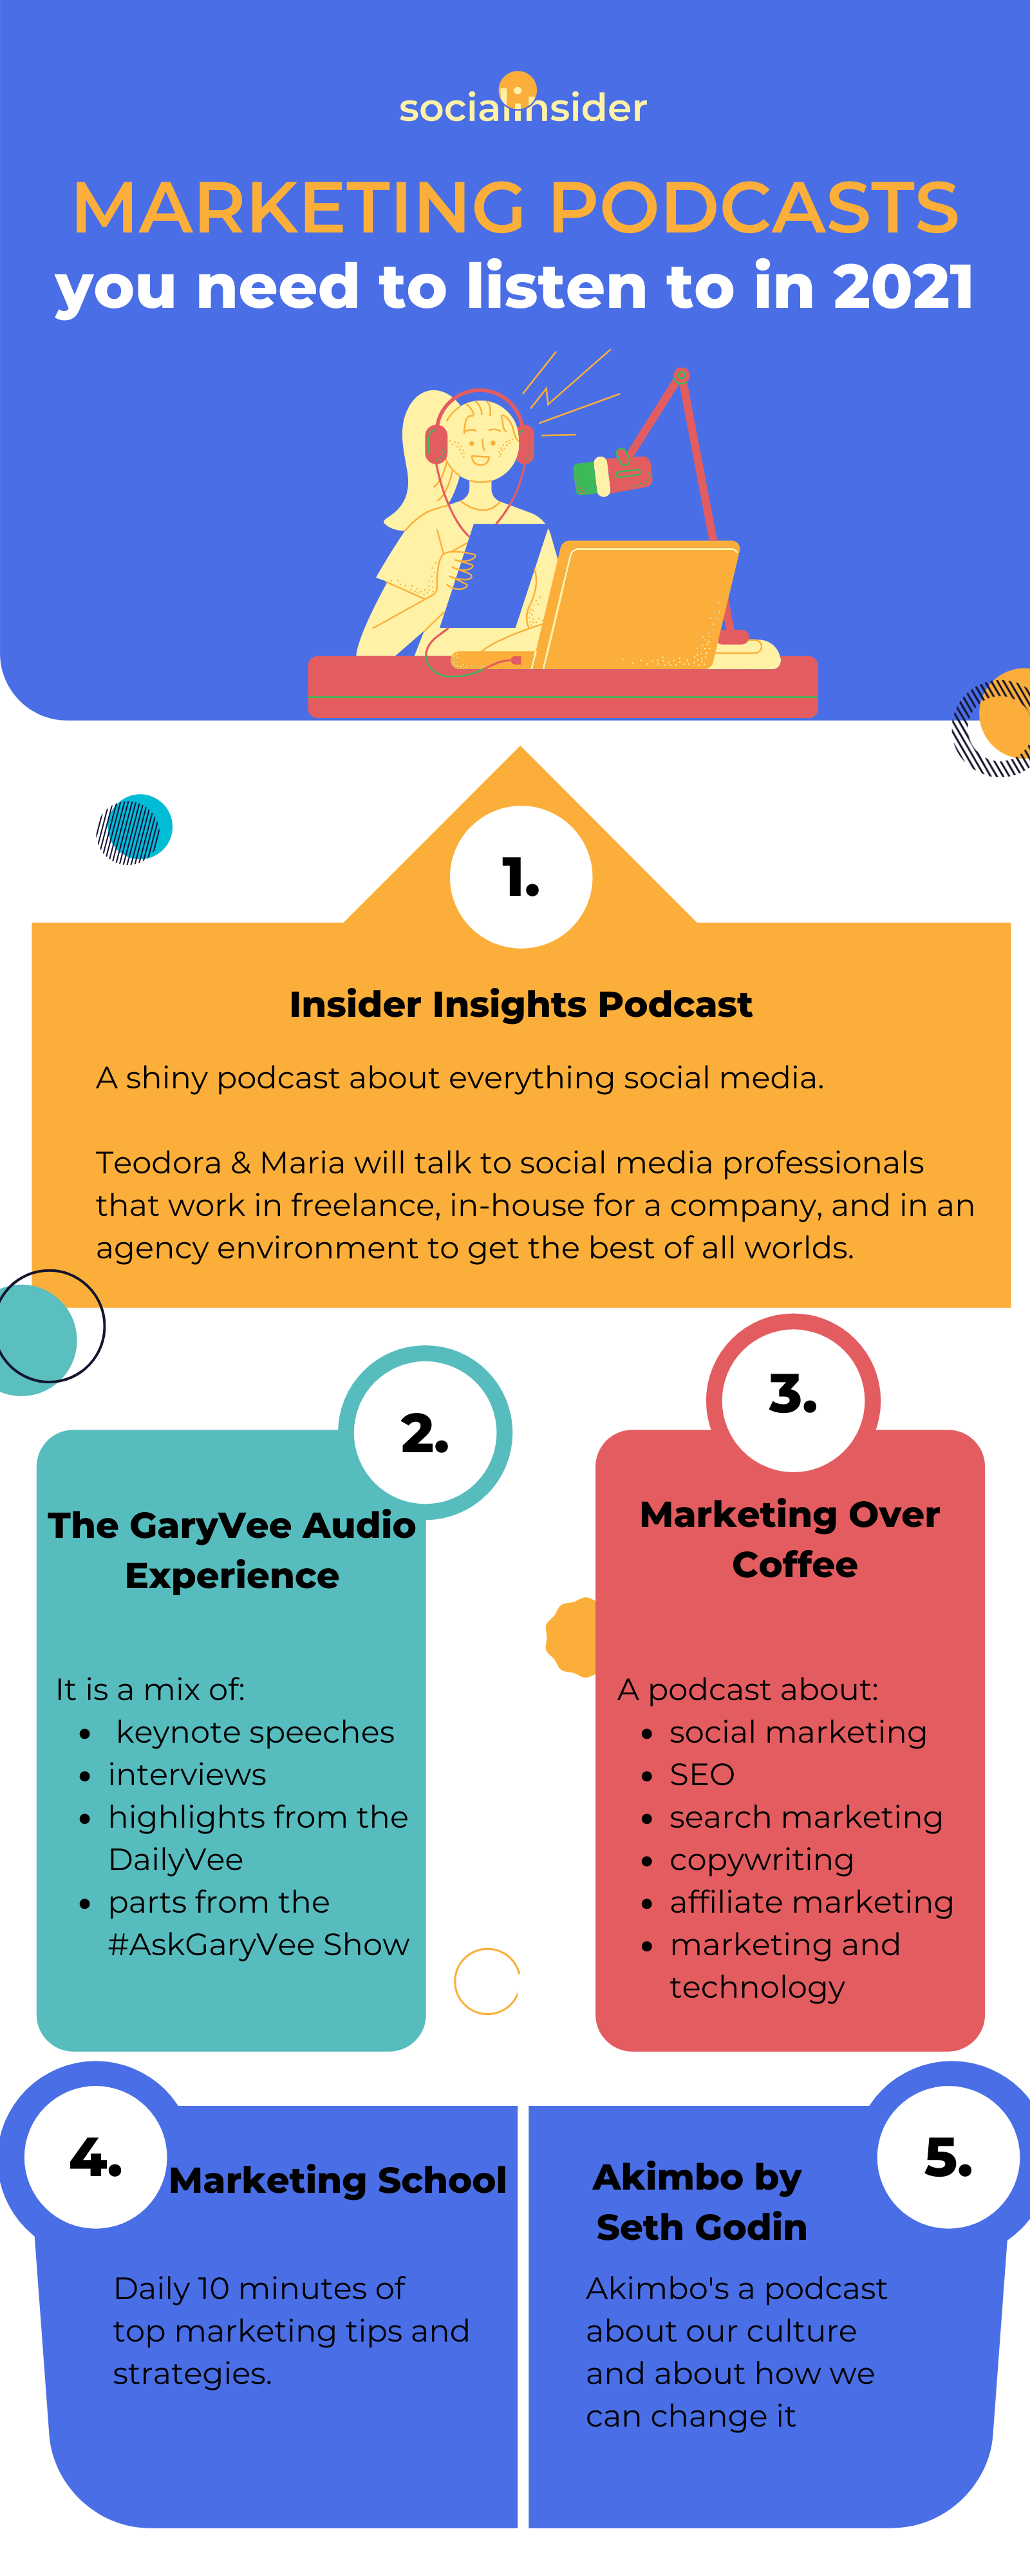 5 Marketing Podcasts You Need to Listen to in 2021 Image